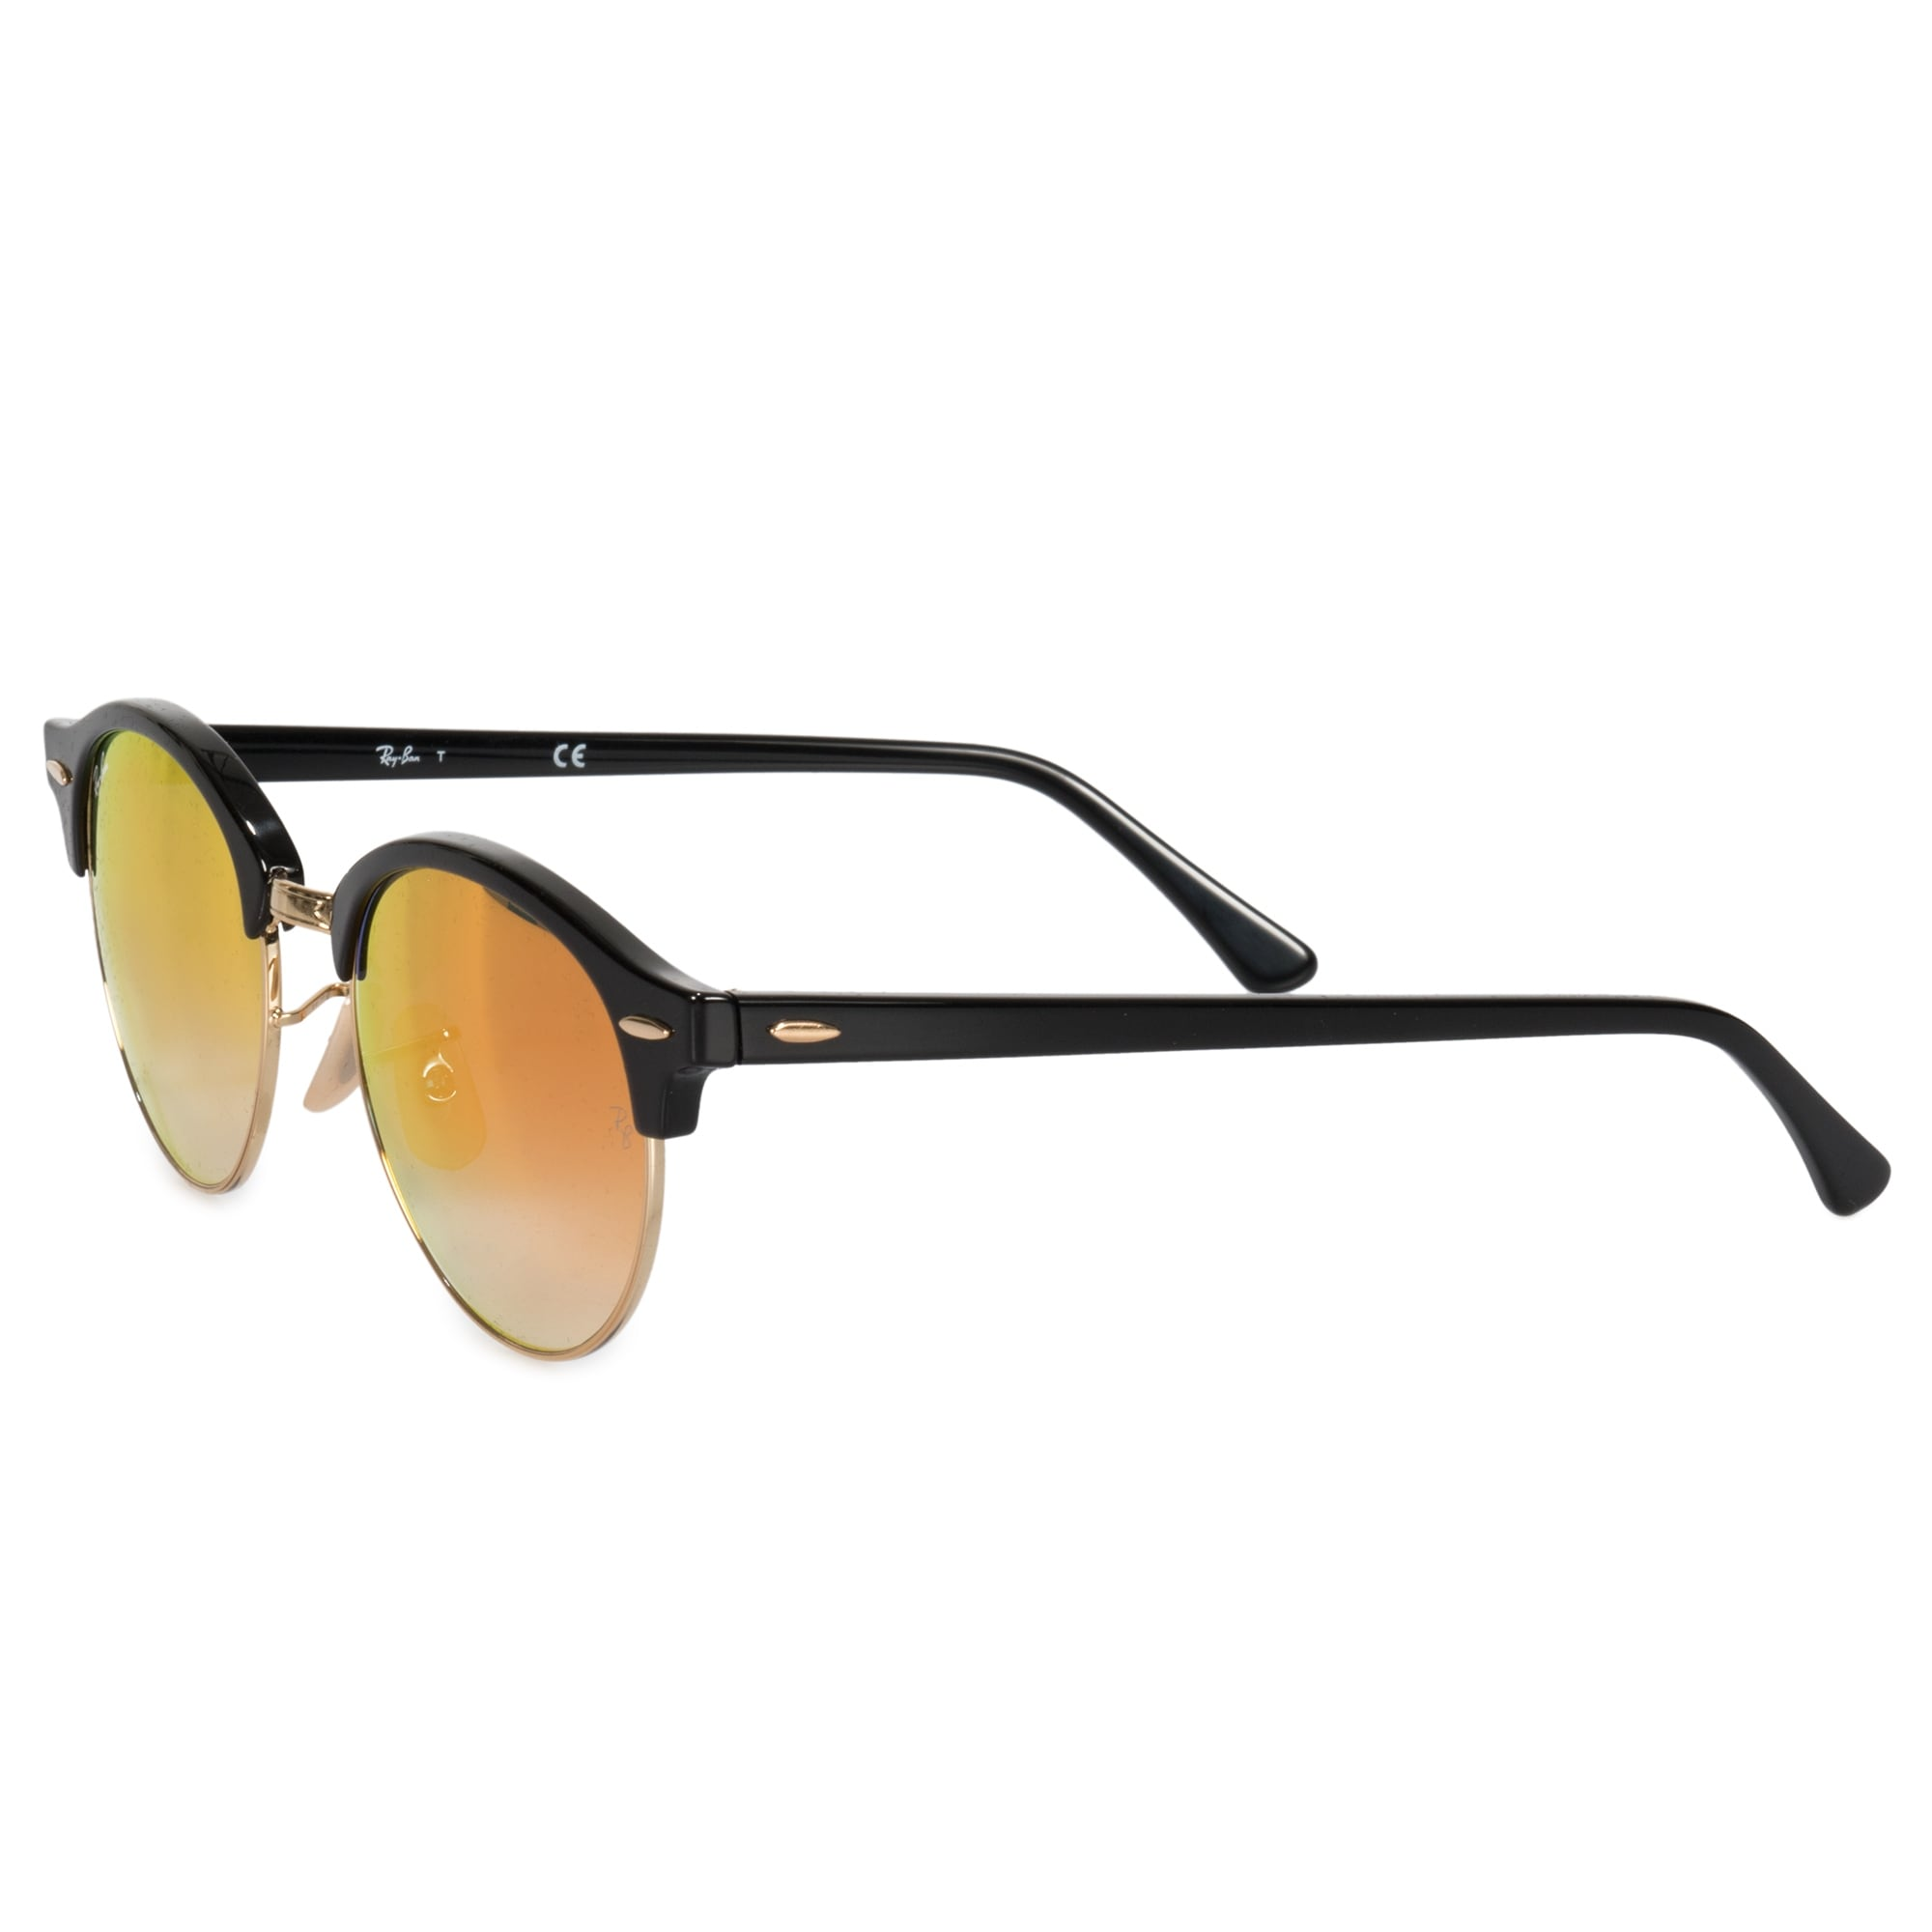 7a28fc661 Shop Ray-Ban Clubround Classic Sunglasses RB4246 901/4W 51 - On Sale - Free  Shipping Today - Overstock - 23138961